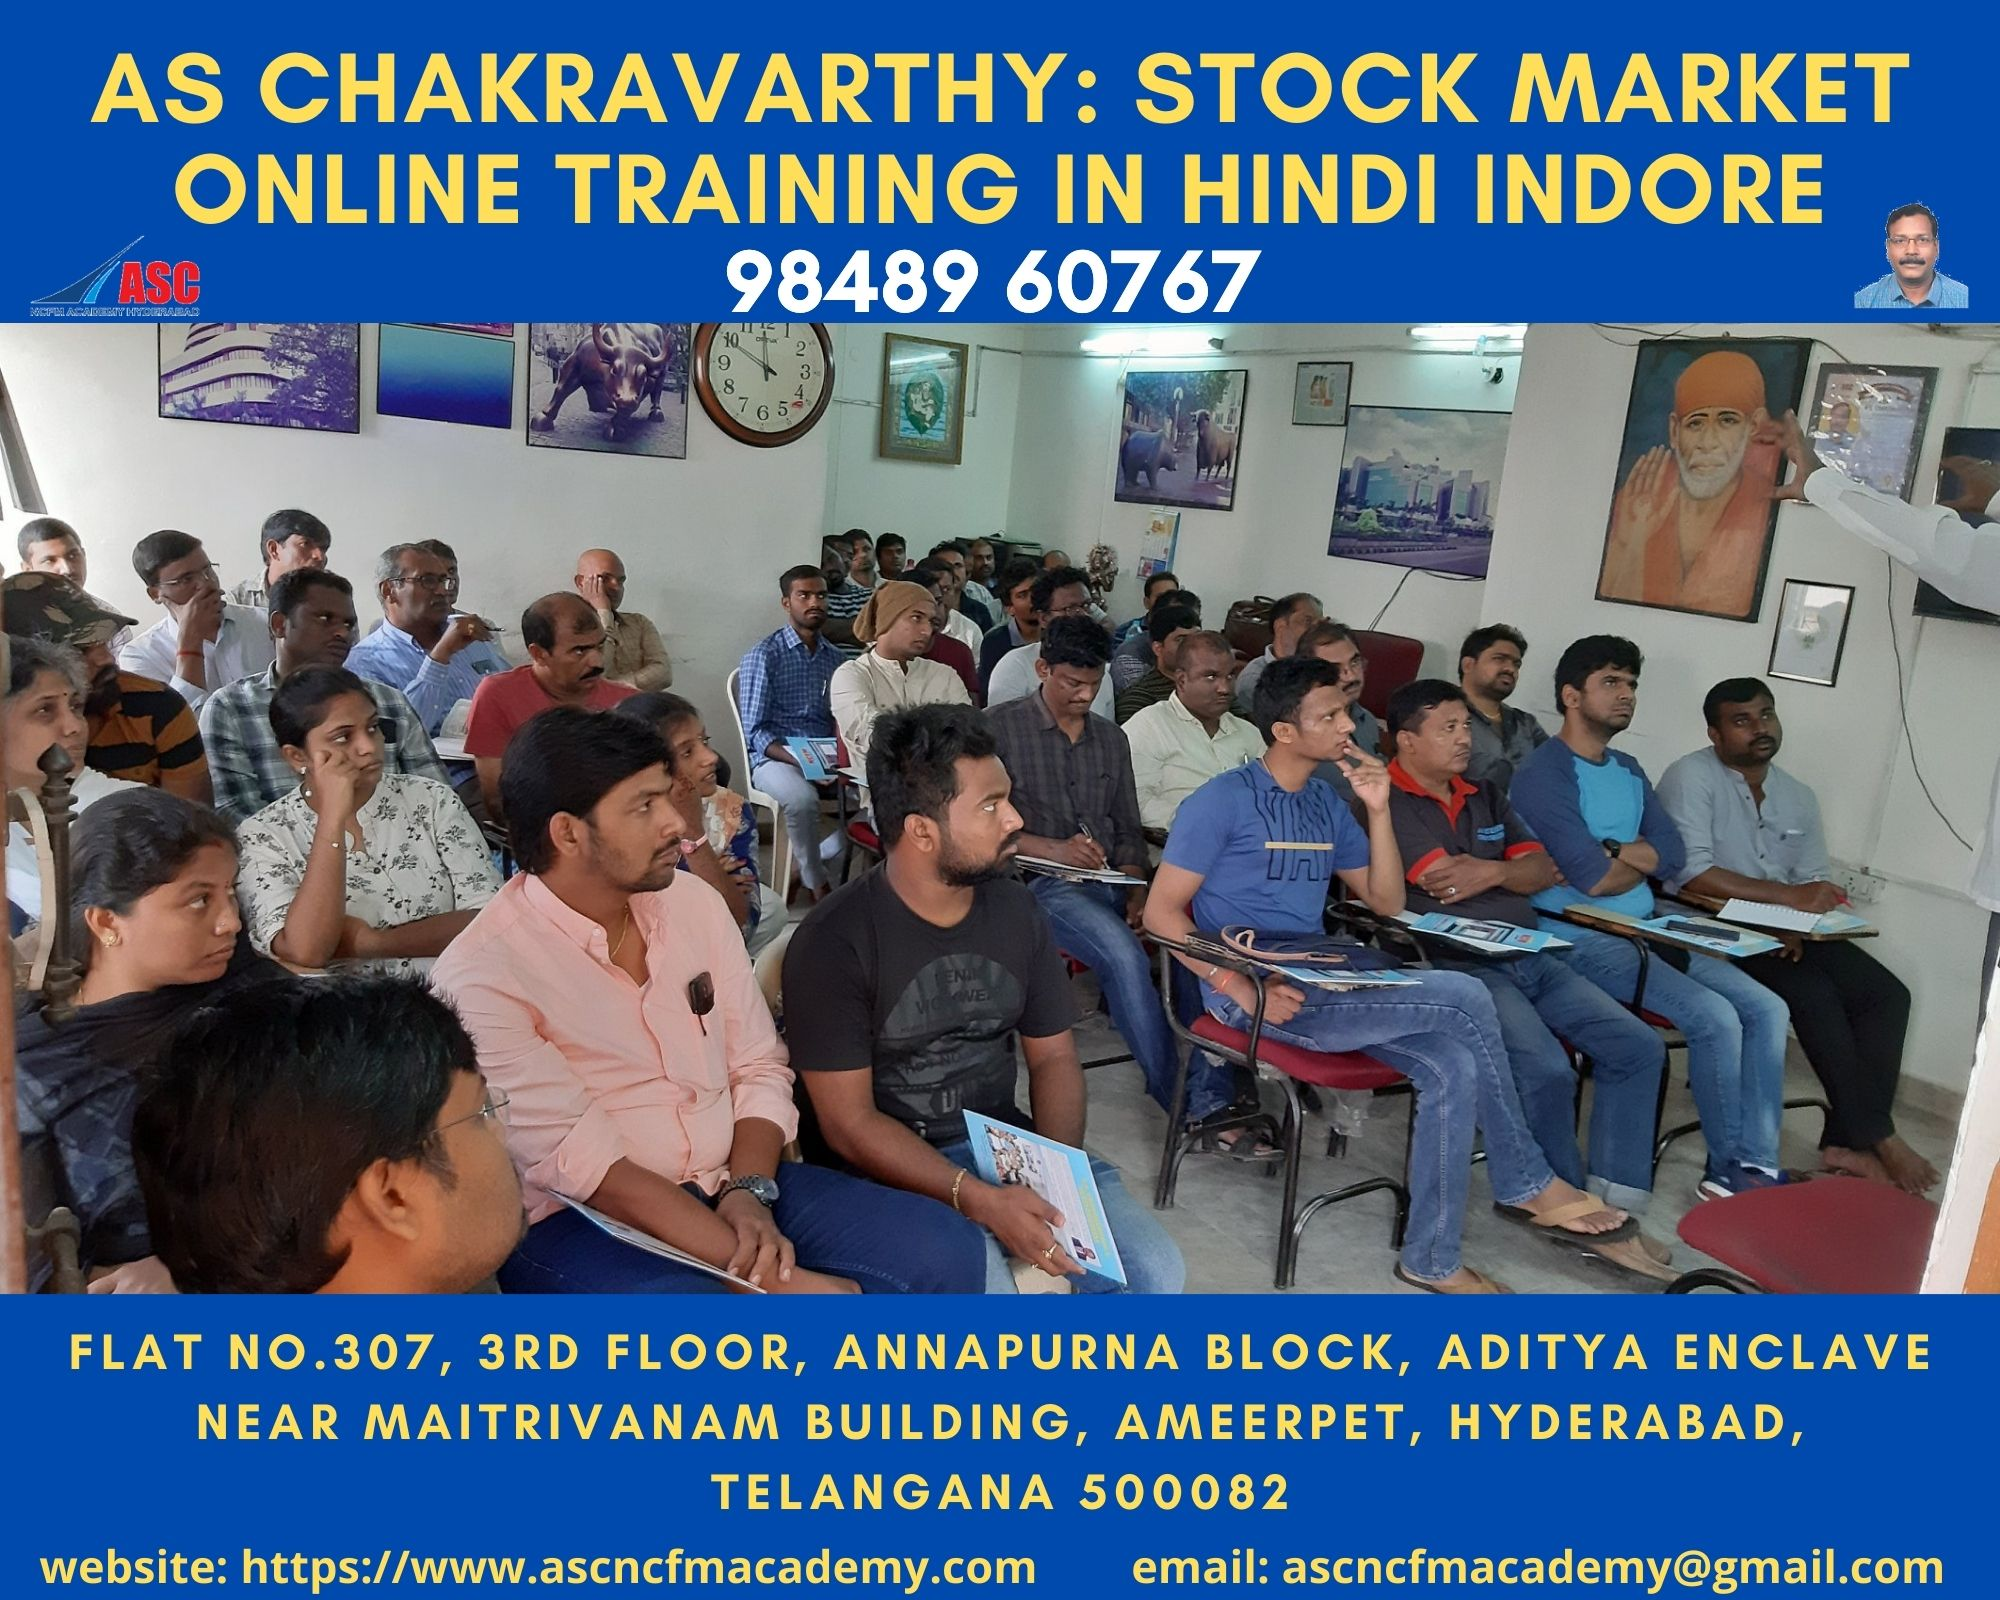 Online Stock Market Technical Training in Hindi Indore